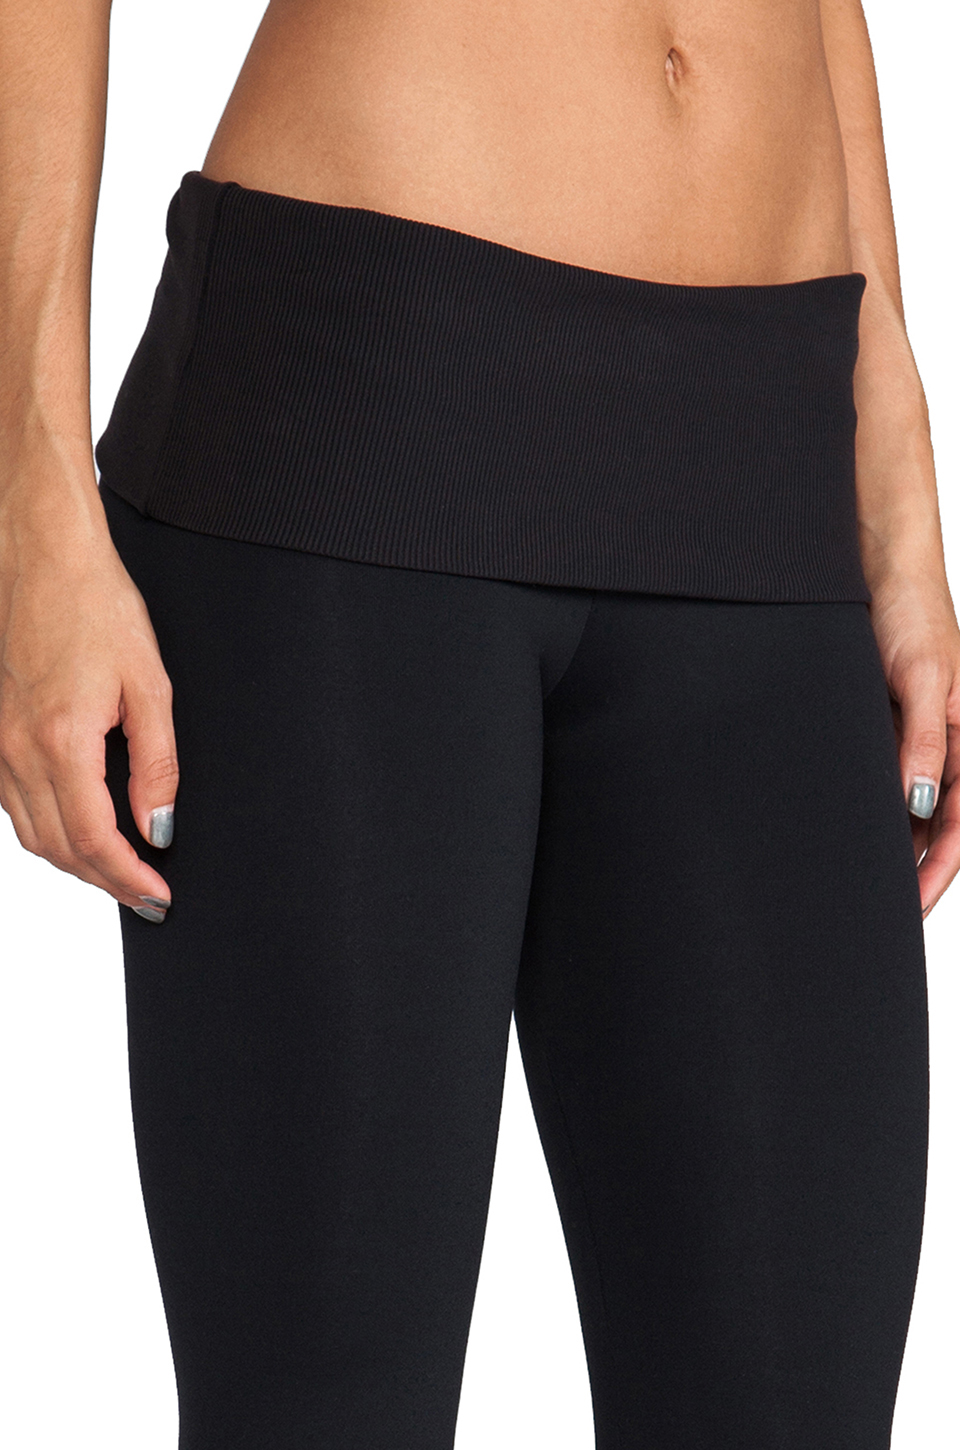 SOLOW Eclon Legging with Footholes & Fold Over Waistband in Black